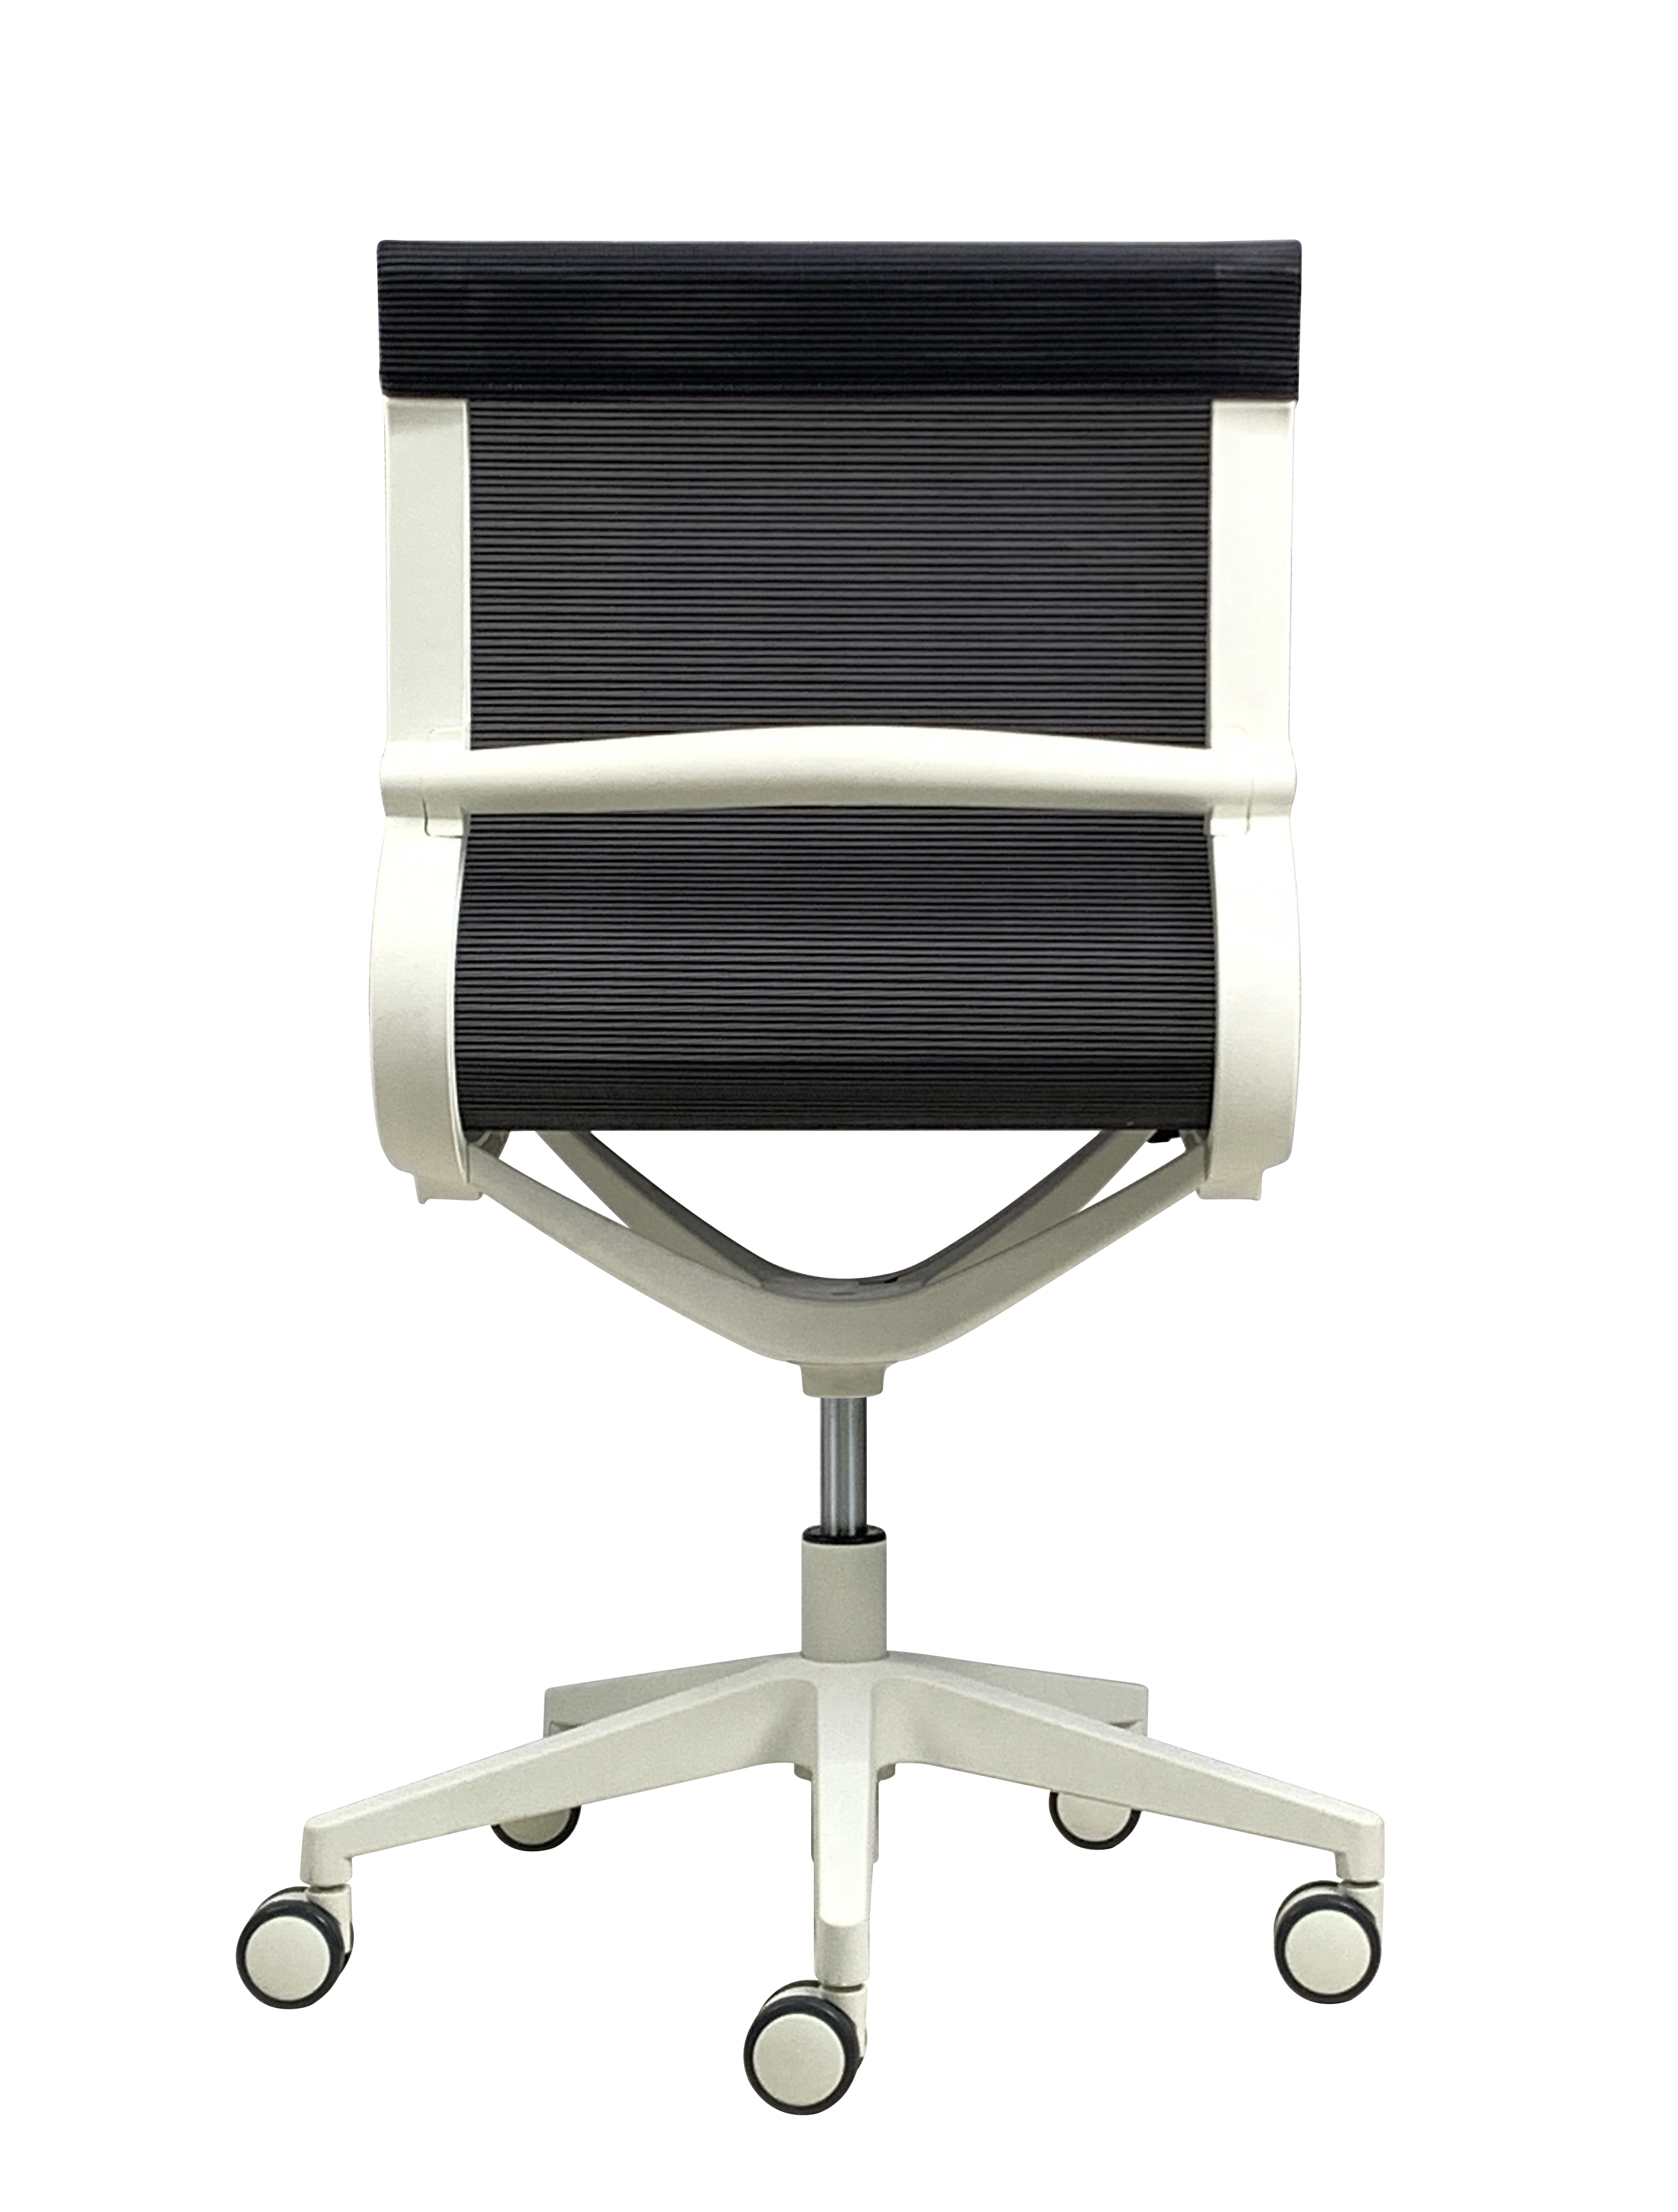 kinetic chair - back view